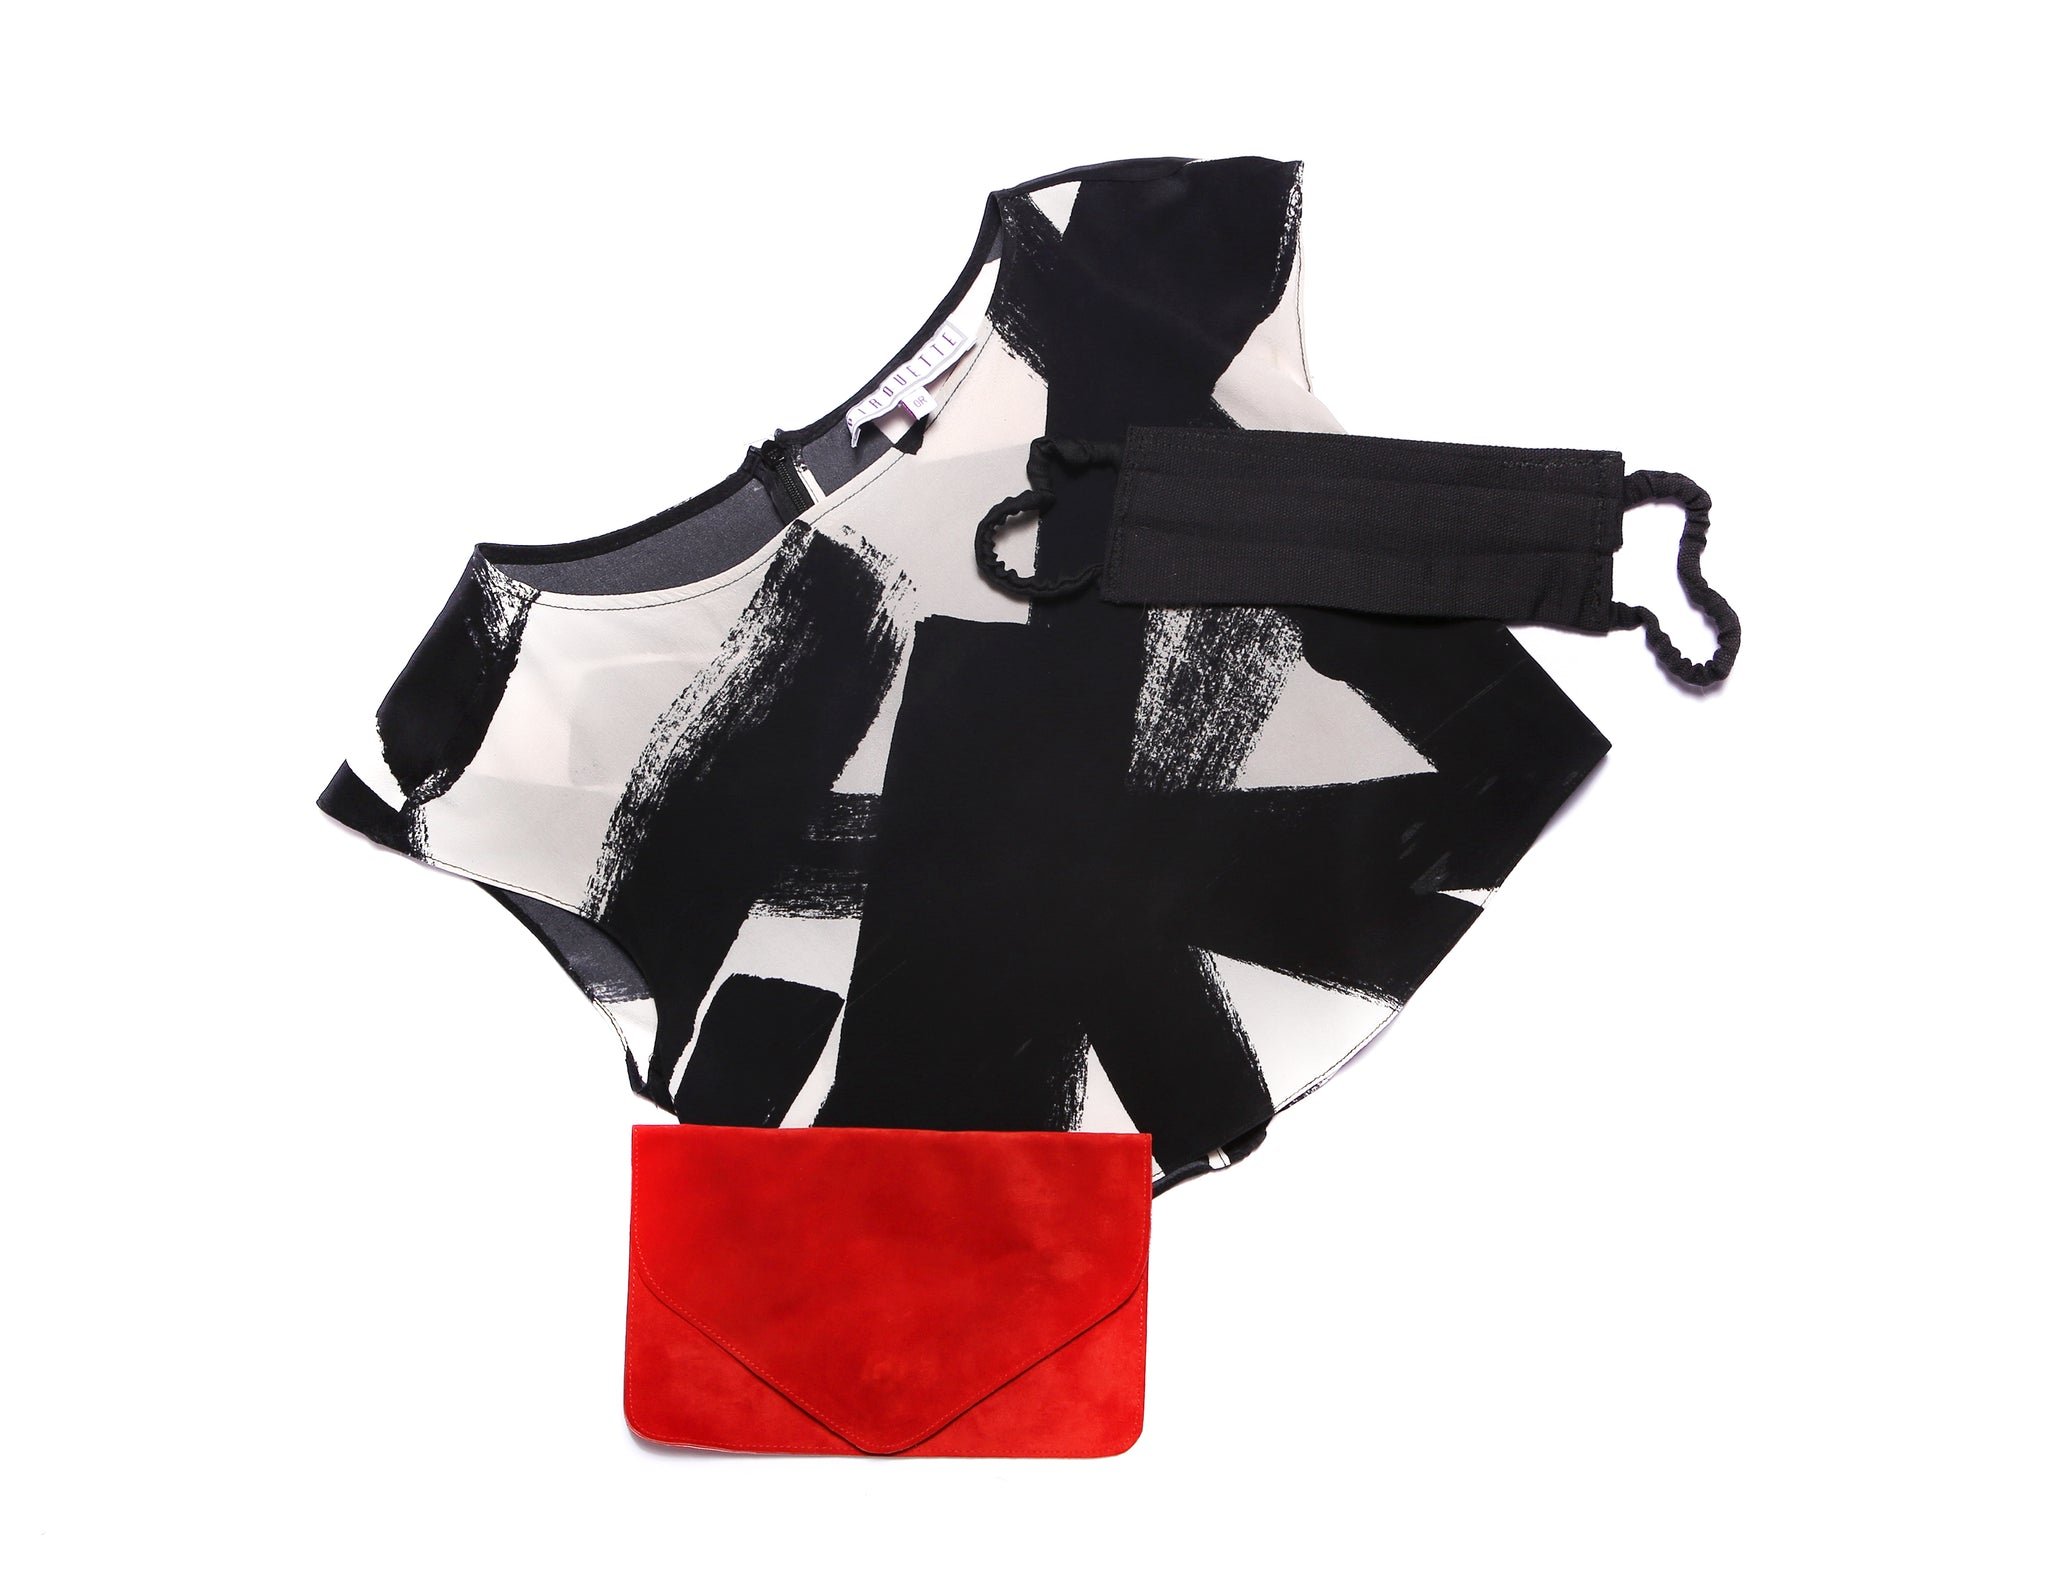 Soho Silk Top + Cherry Red Nadiyah Clutch + Pitch Black Mask Set